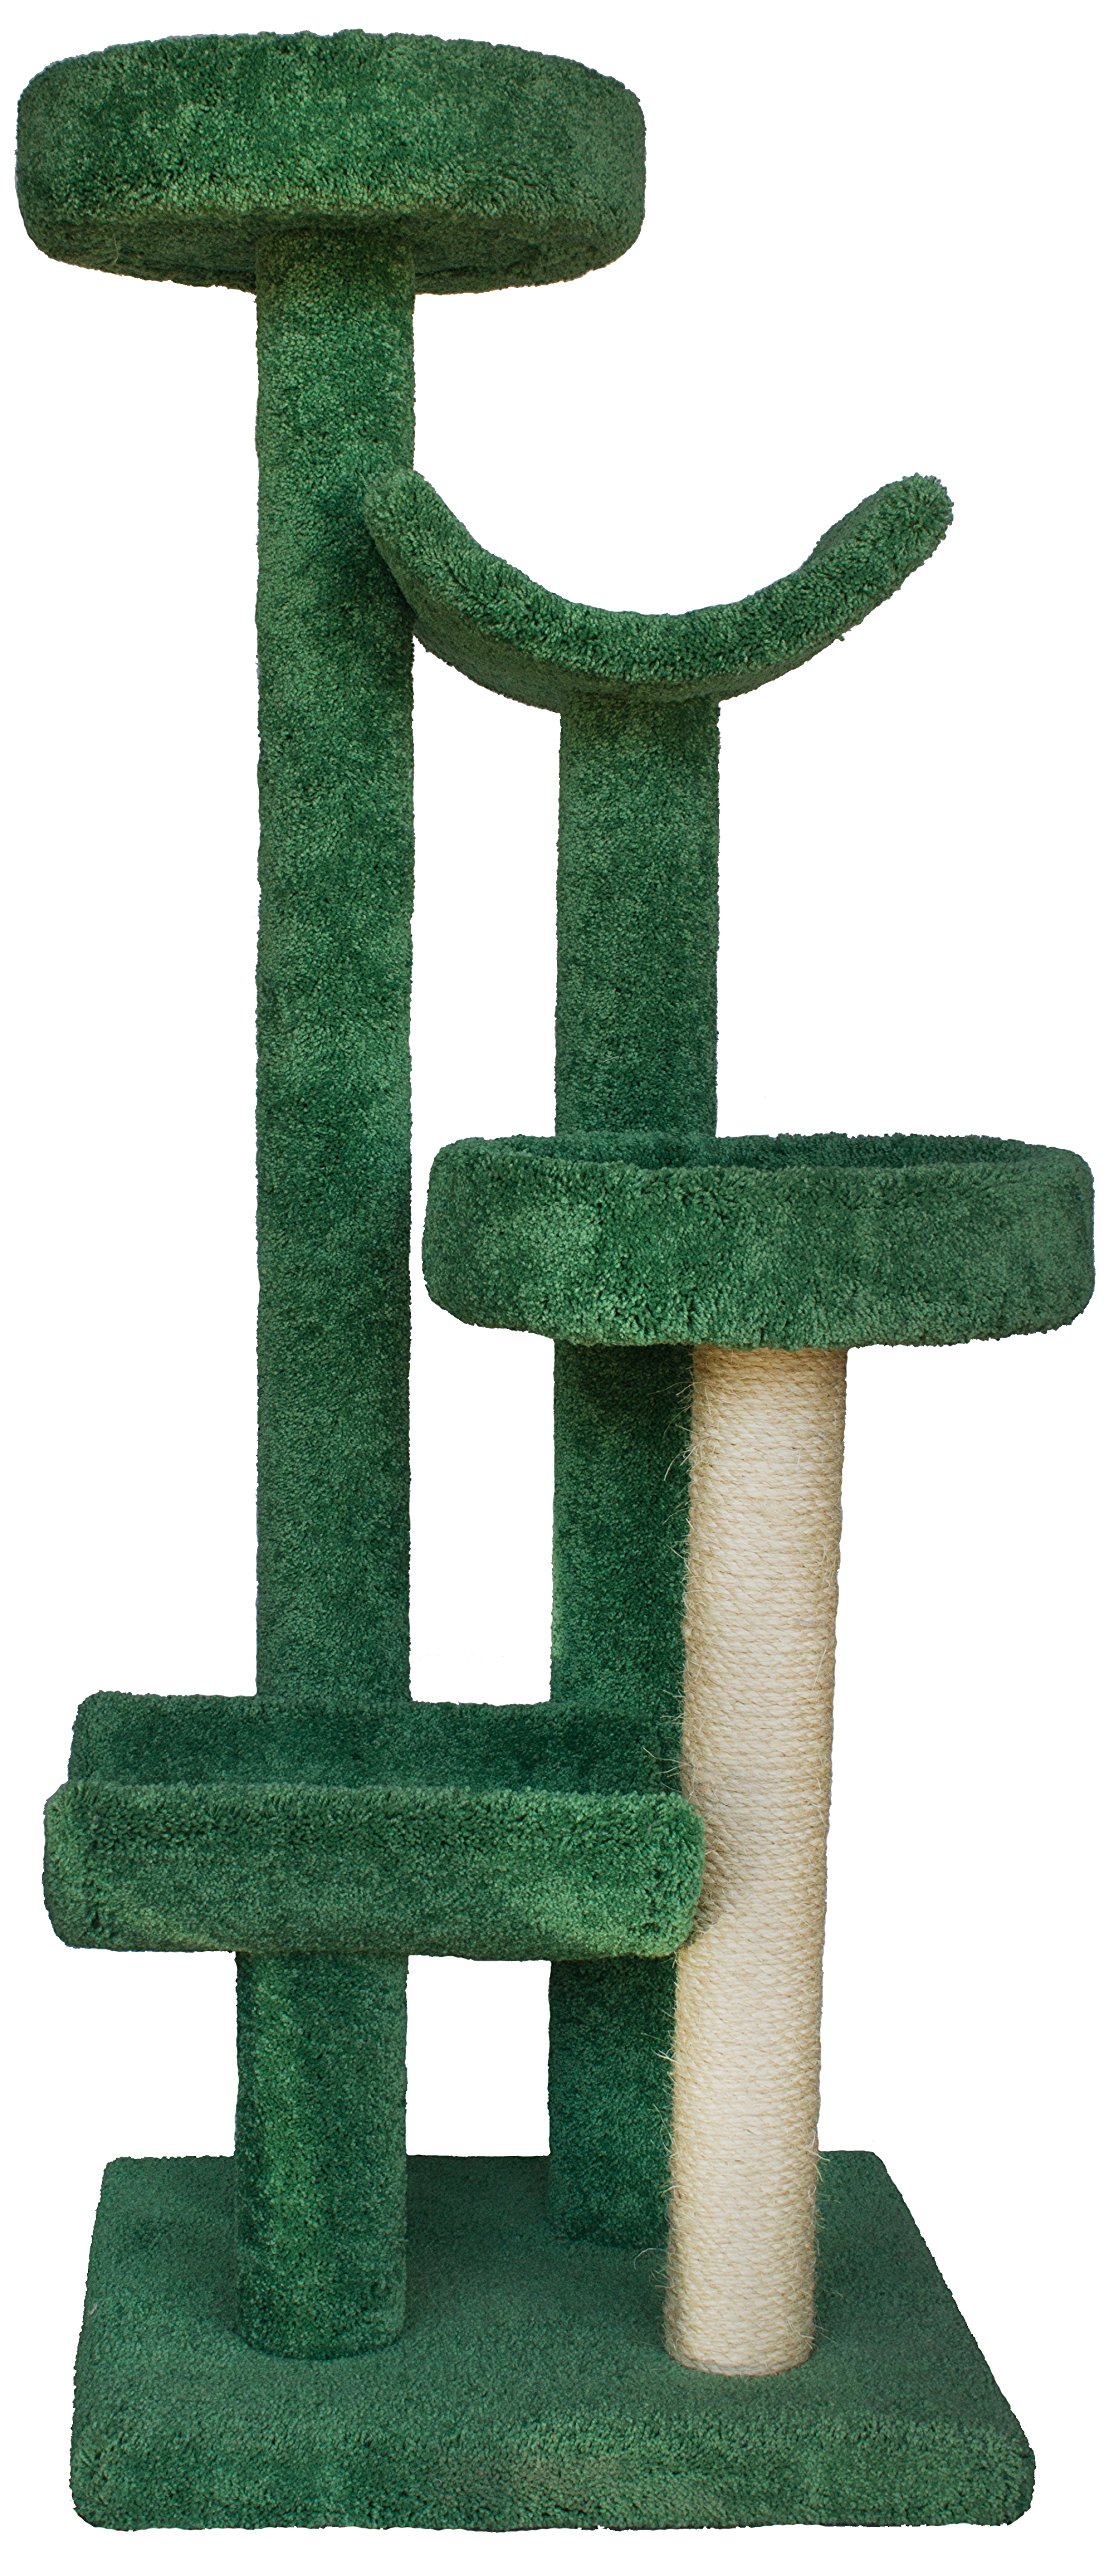 Molly and Friends MF-61-green Four-Tier Scratching Post Furniture, Green